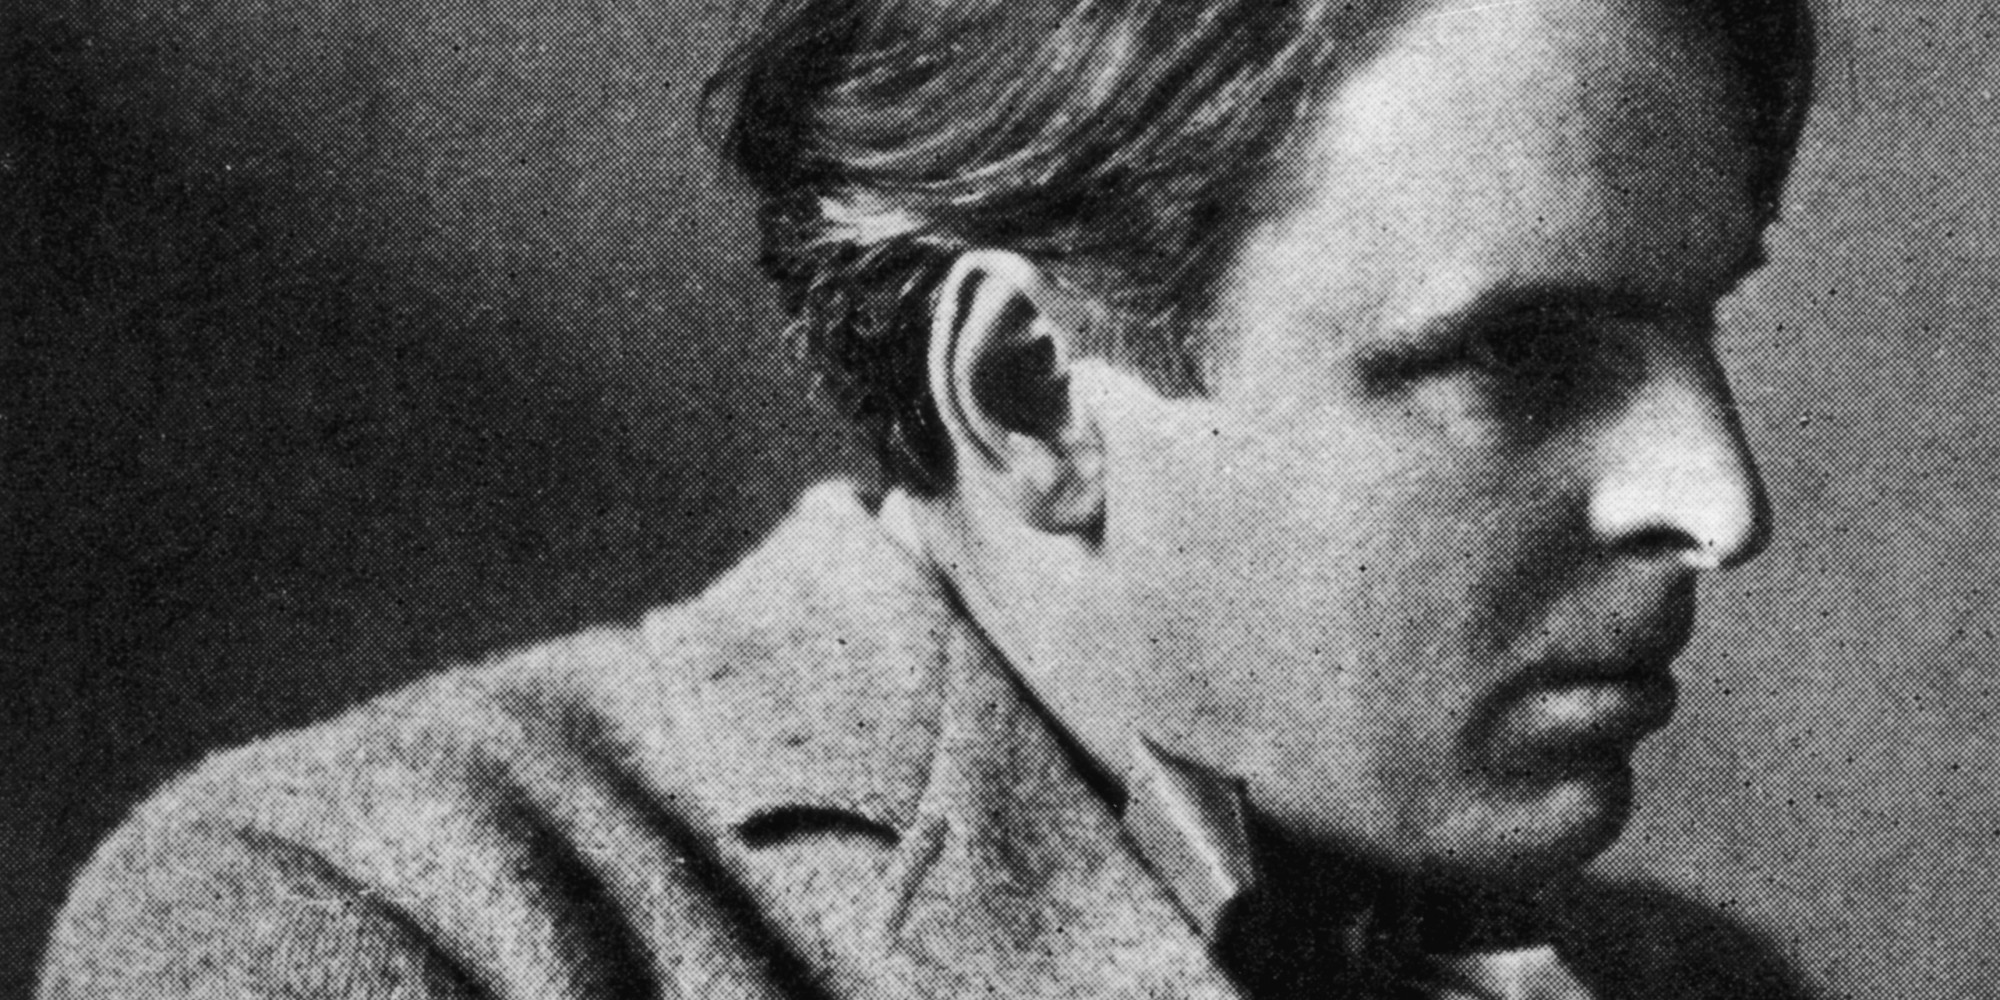 an analysis of yeats easter 1916 Brief summary of the poem easter, 1916  yeats starts the poem off by talking  about the dudes he runs into in the street when the shops and offices are closing .